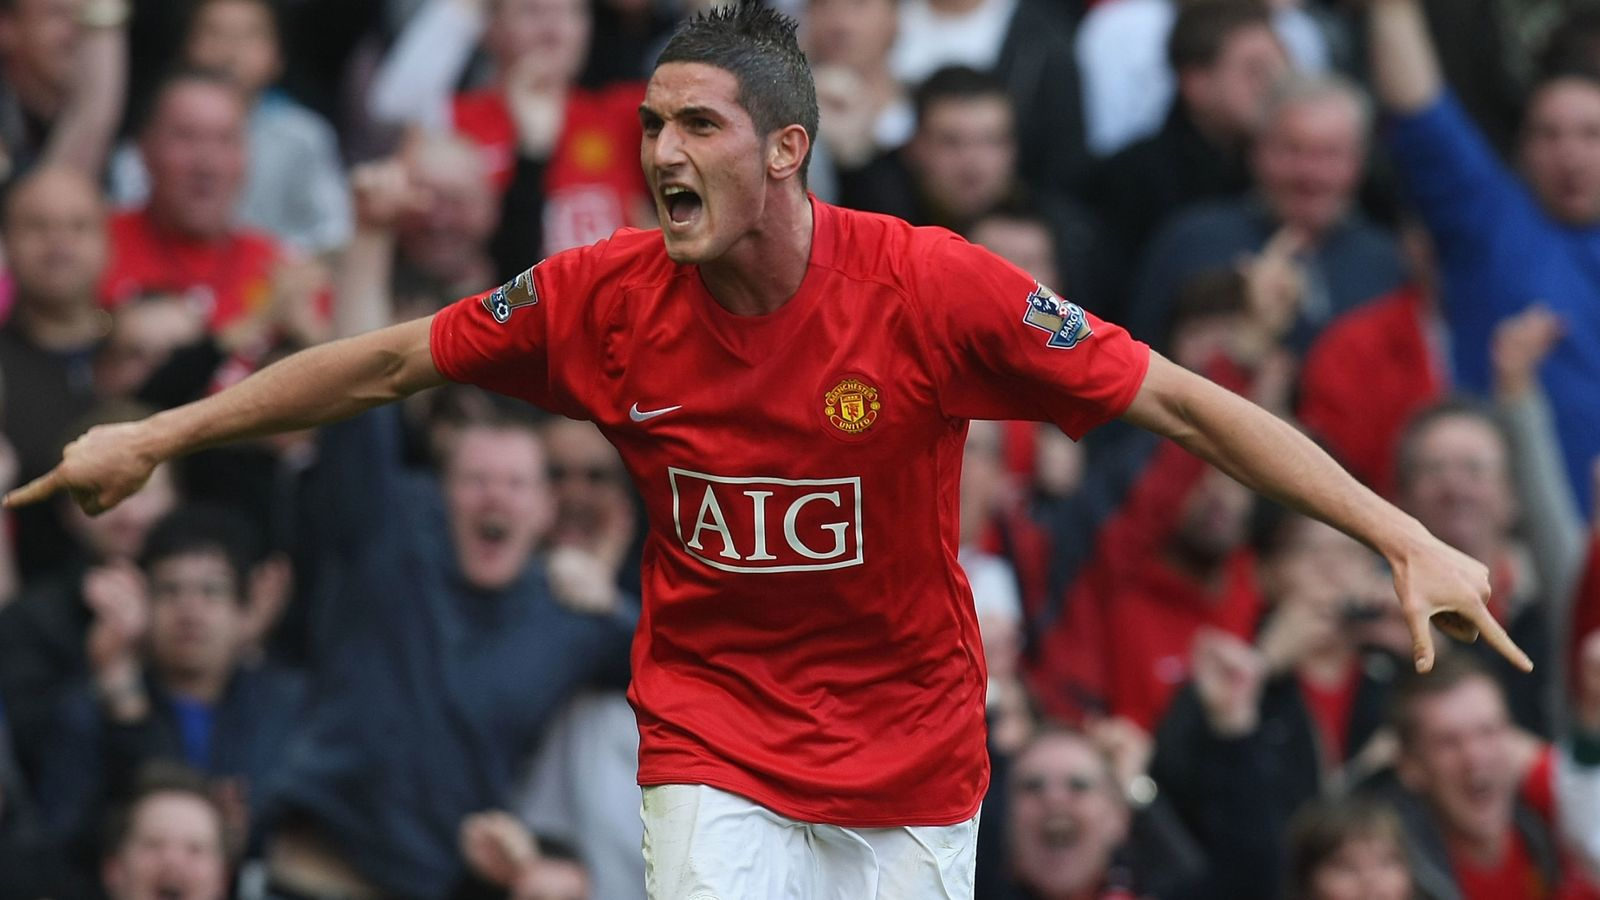 Flipboard Federico Macheda Eleven Years On From Italian S Famous Images, Photos, Reviews